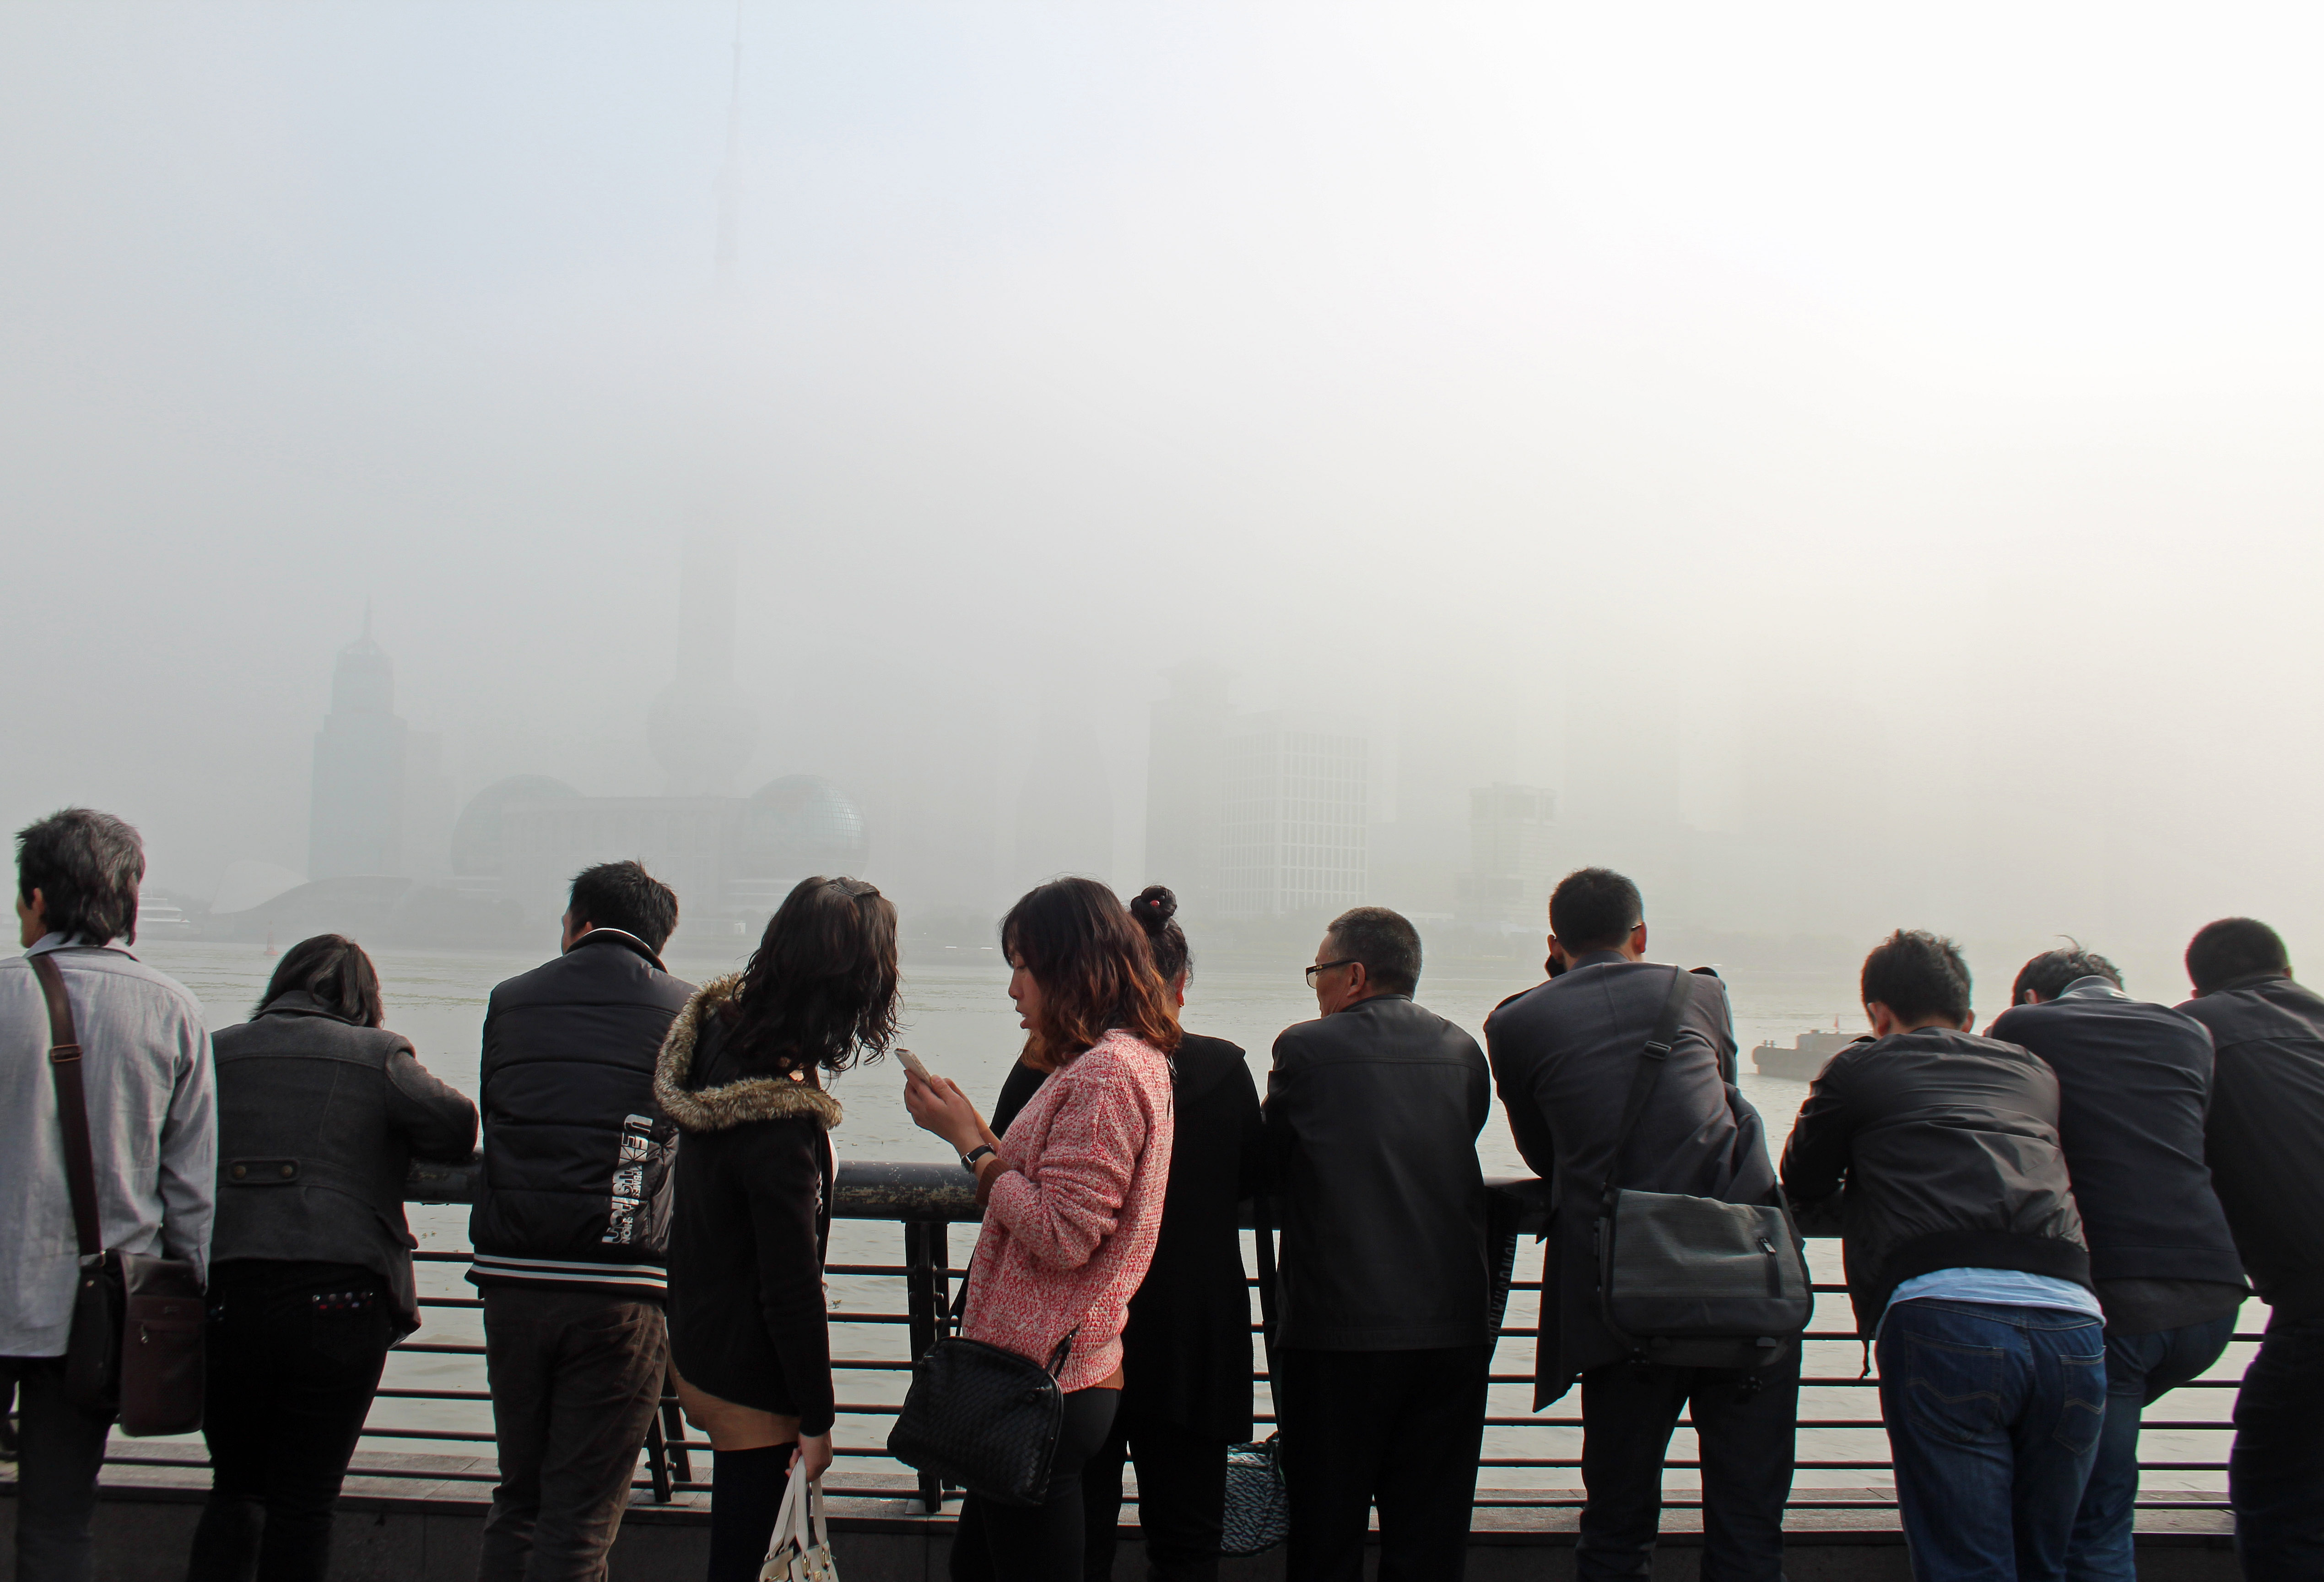 A nearly invisible skyline, from air pollution and fog, doesn't stop tourists from taking pictures in Shanghai. Photo by Larisa Epatko/PBS NewsHour